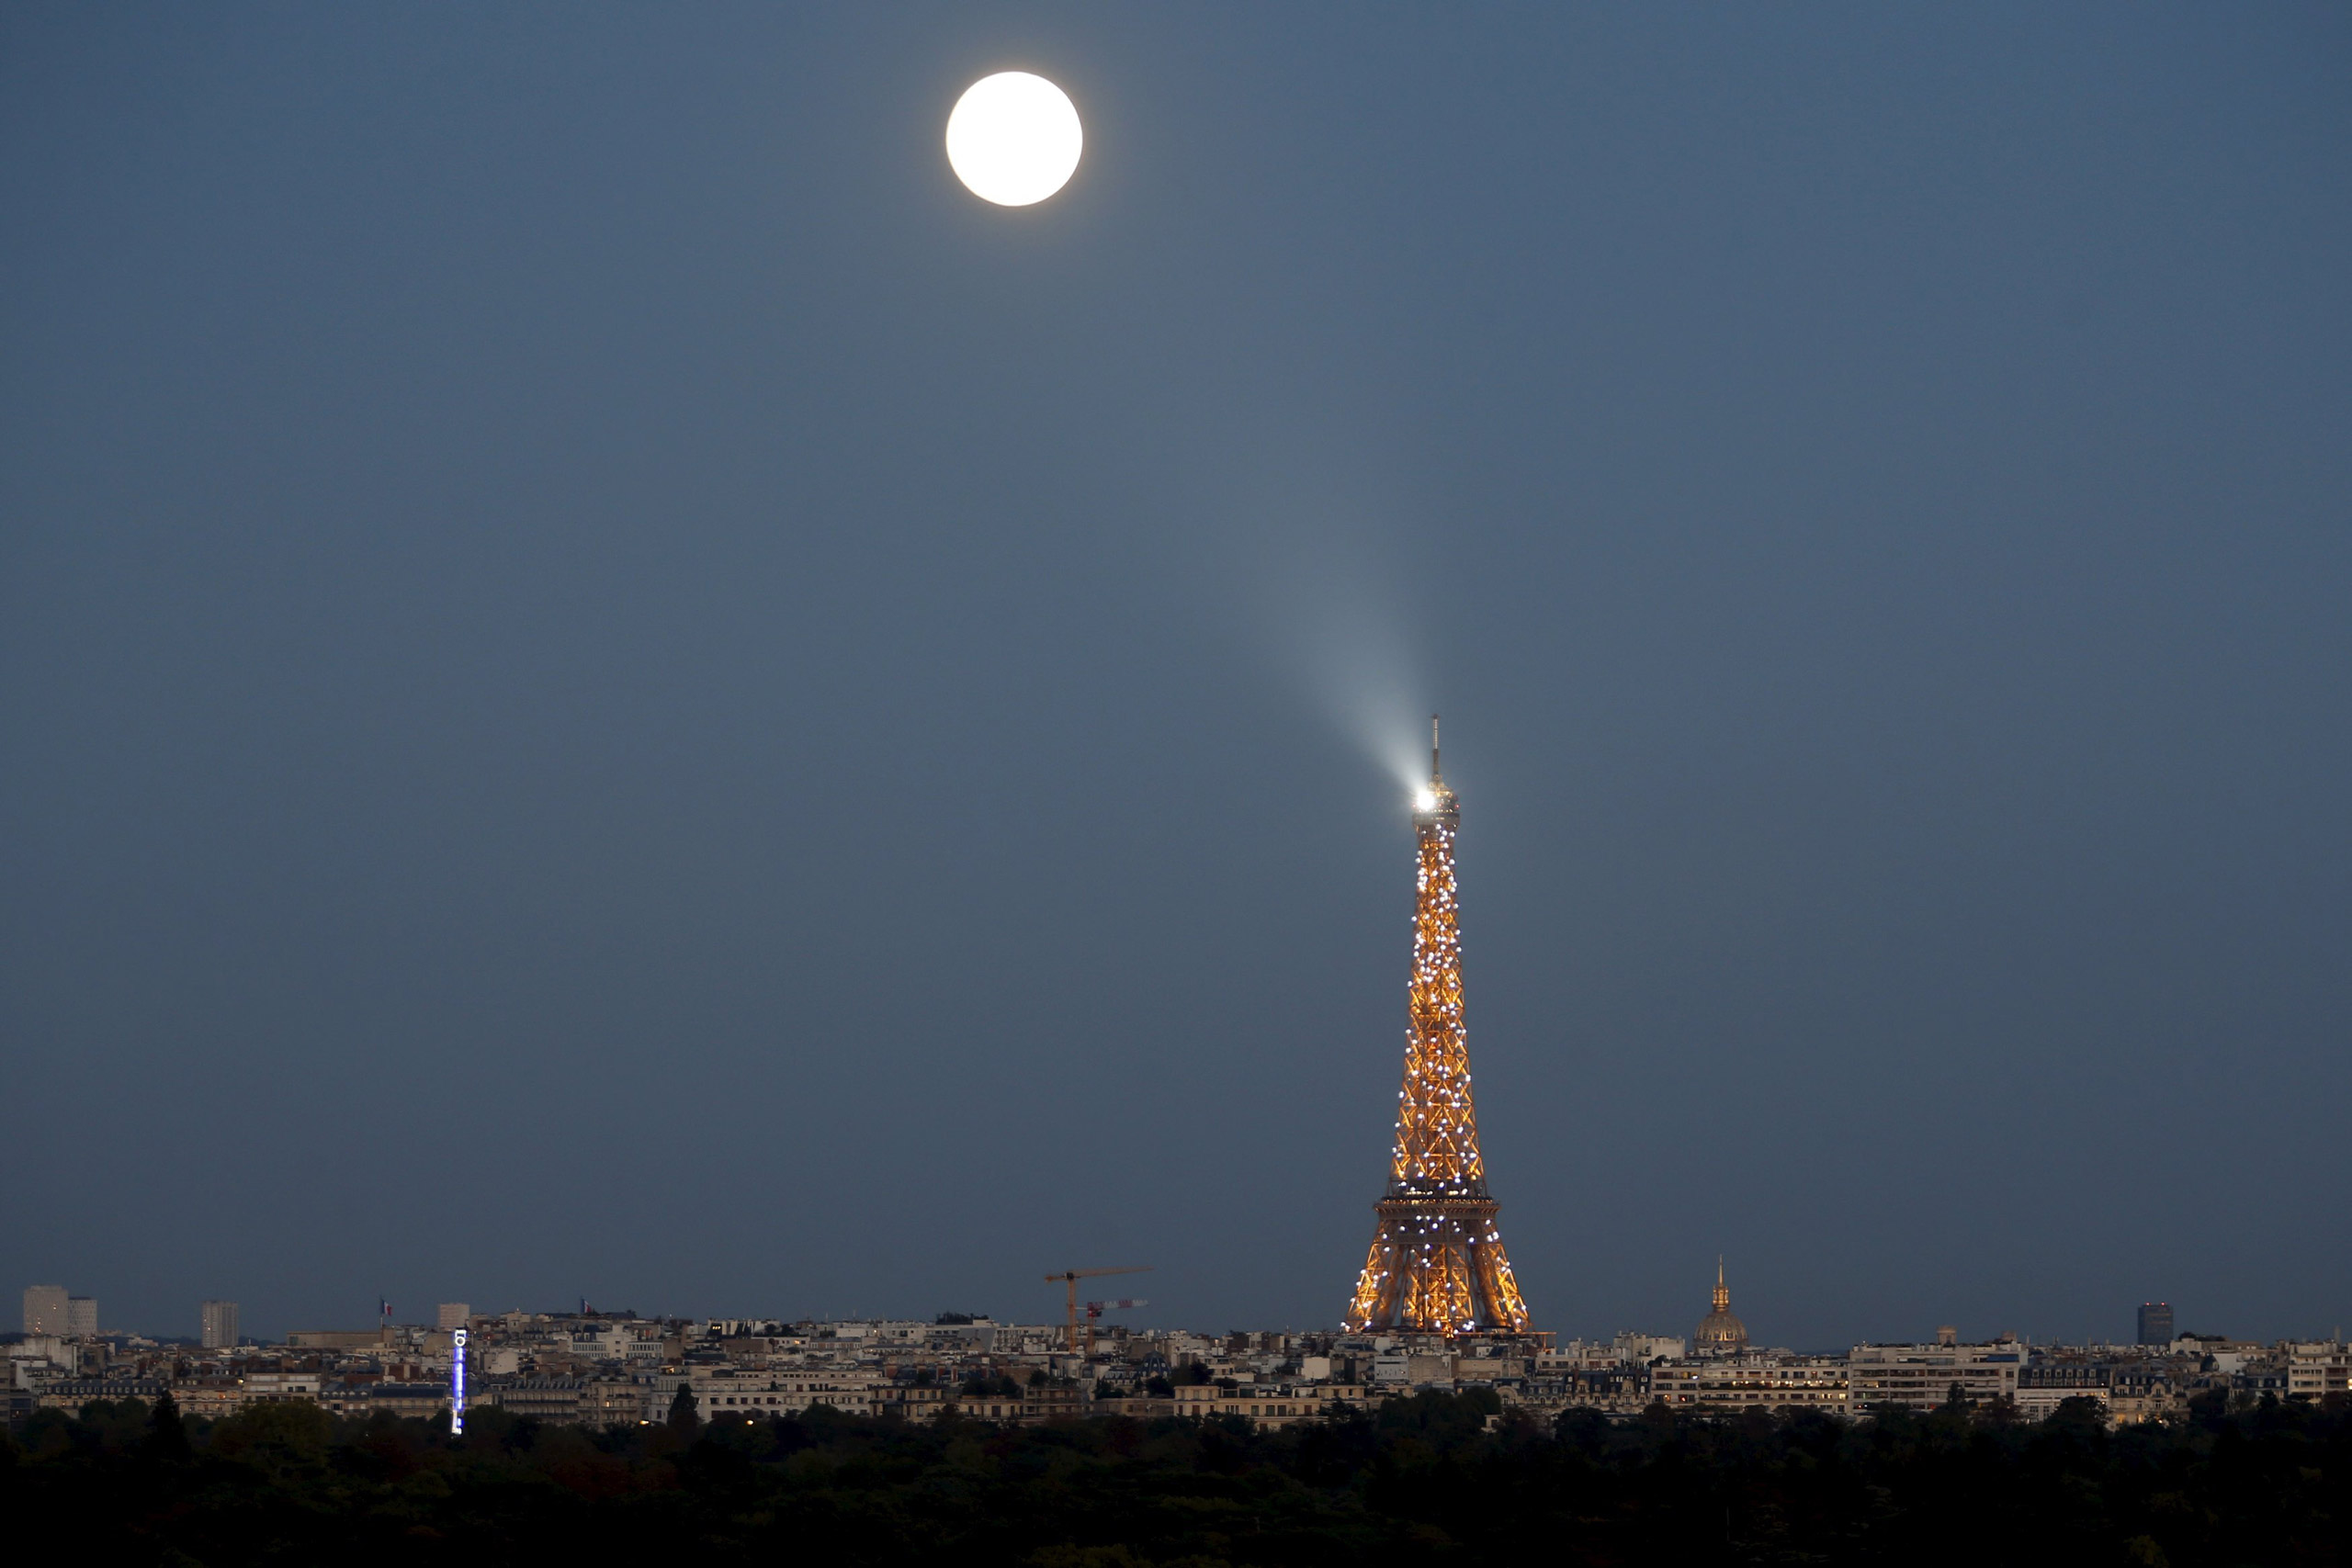 A super moon rises in the sky near the Eiffel tower in Paris on Sept. 27, 2015.